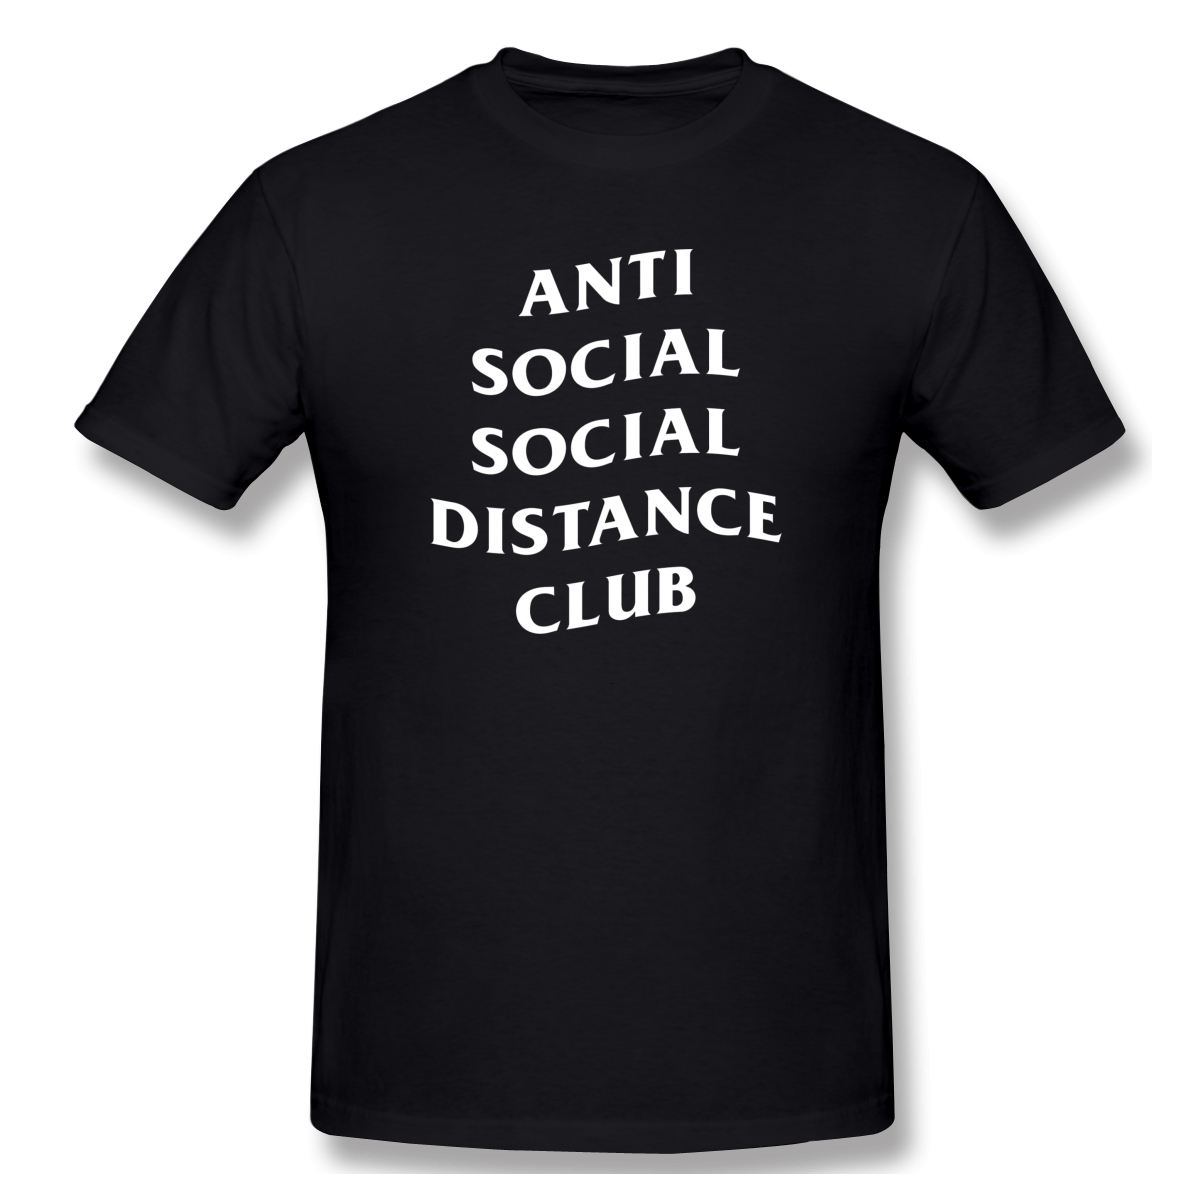 Anti Social Social Distance Club Social Distance Men's Basic Short Sleeve T-Shirt European Size